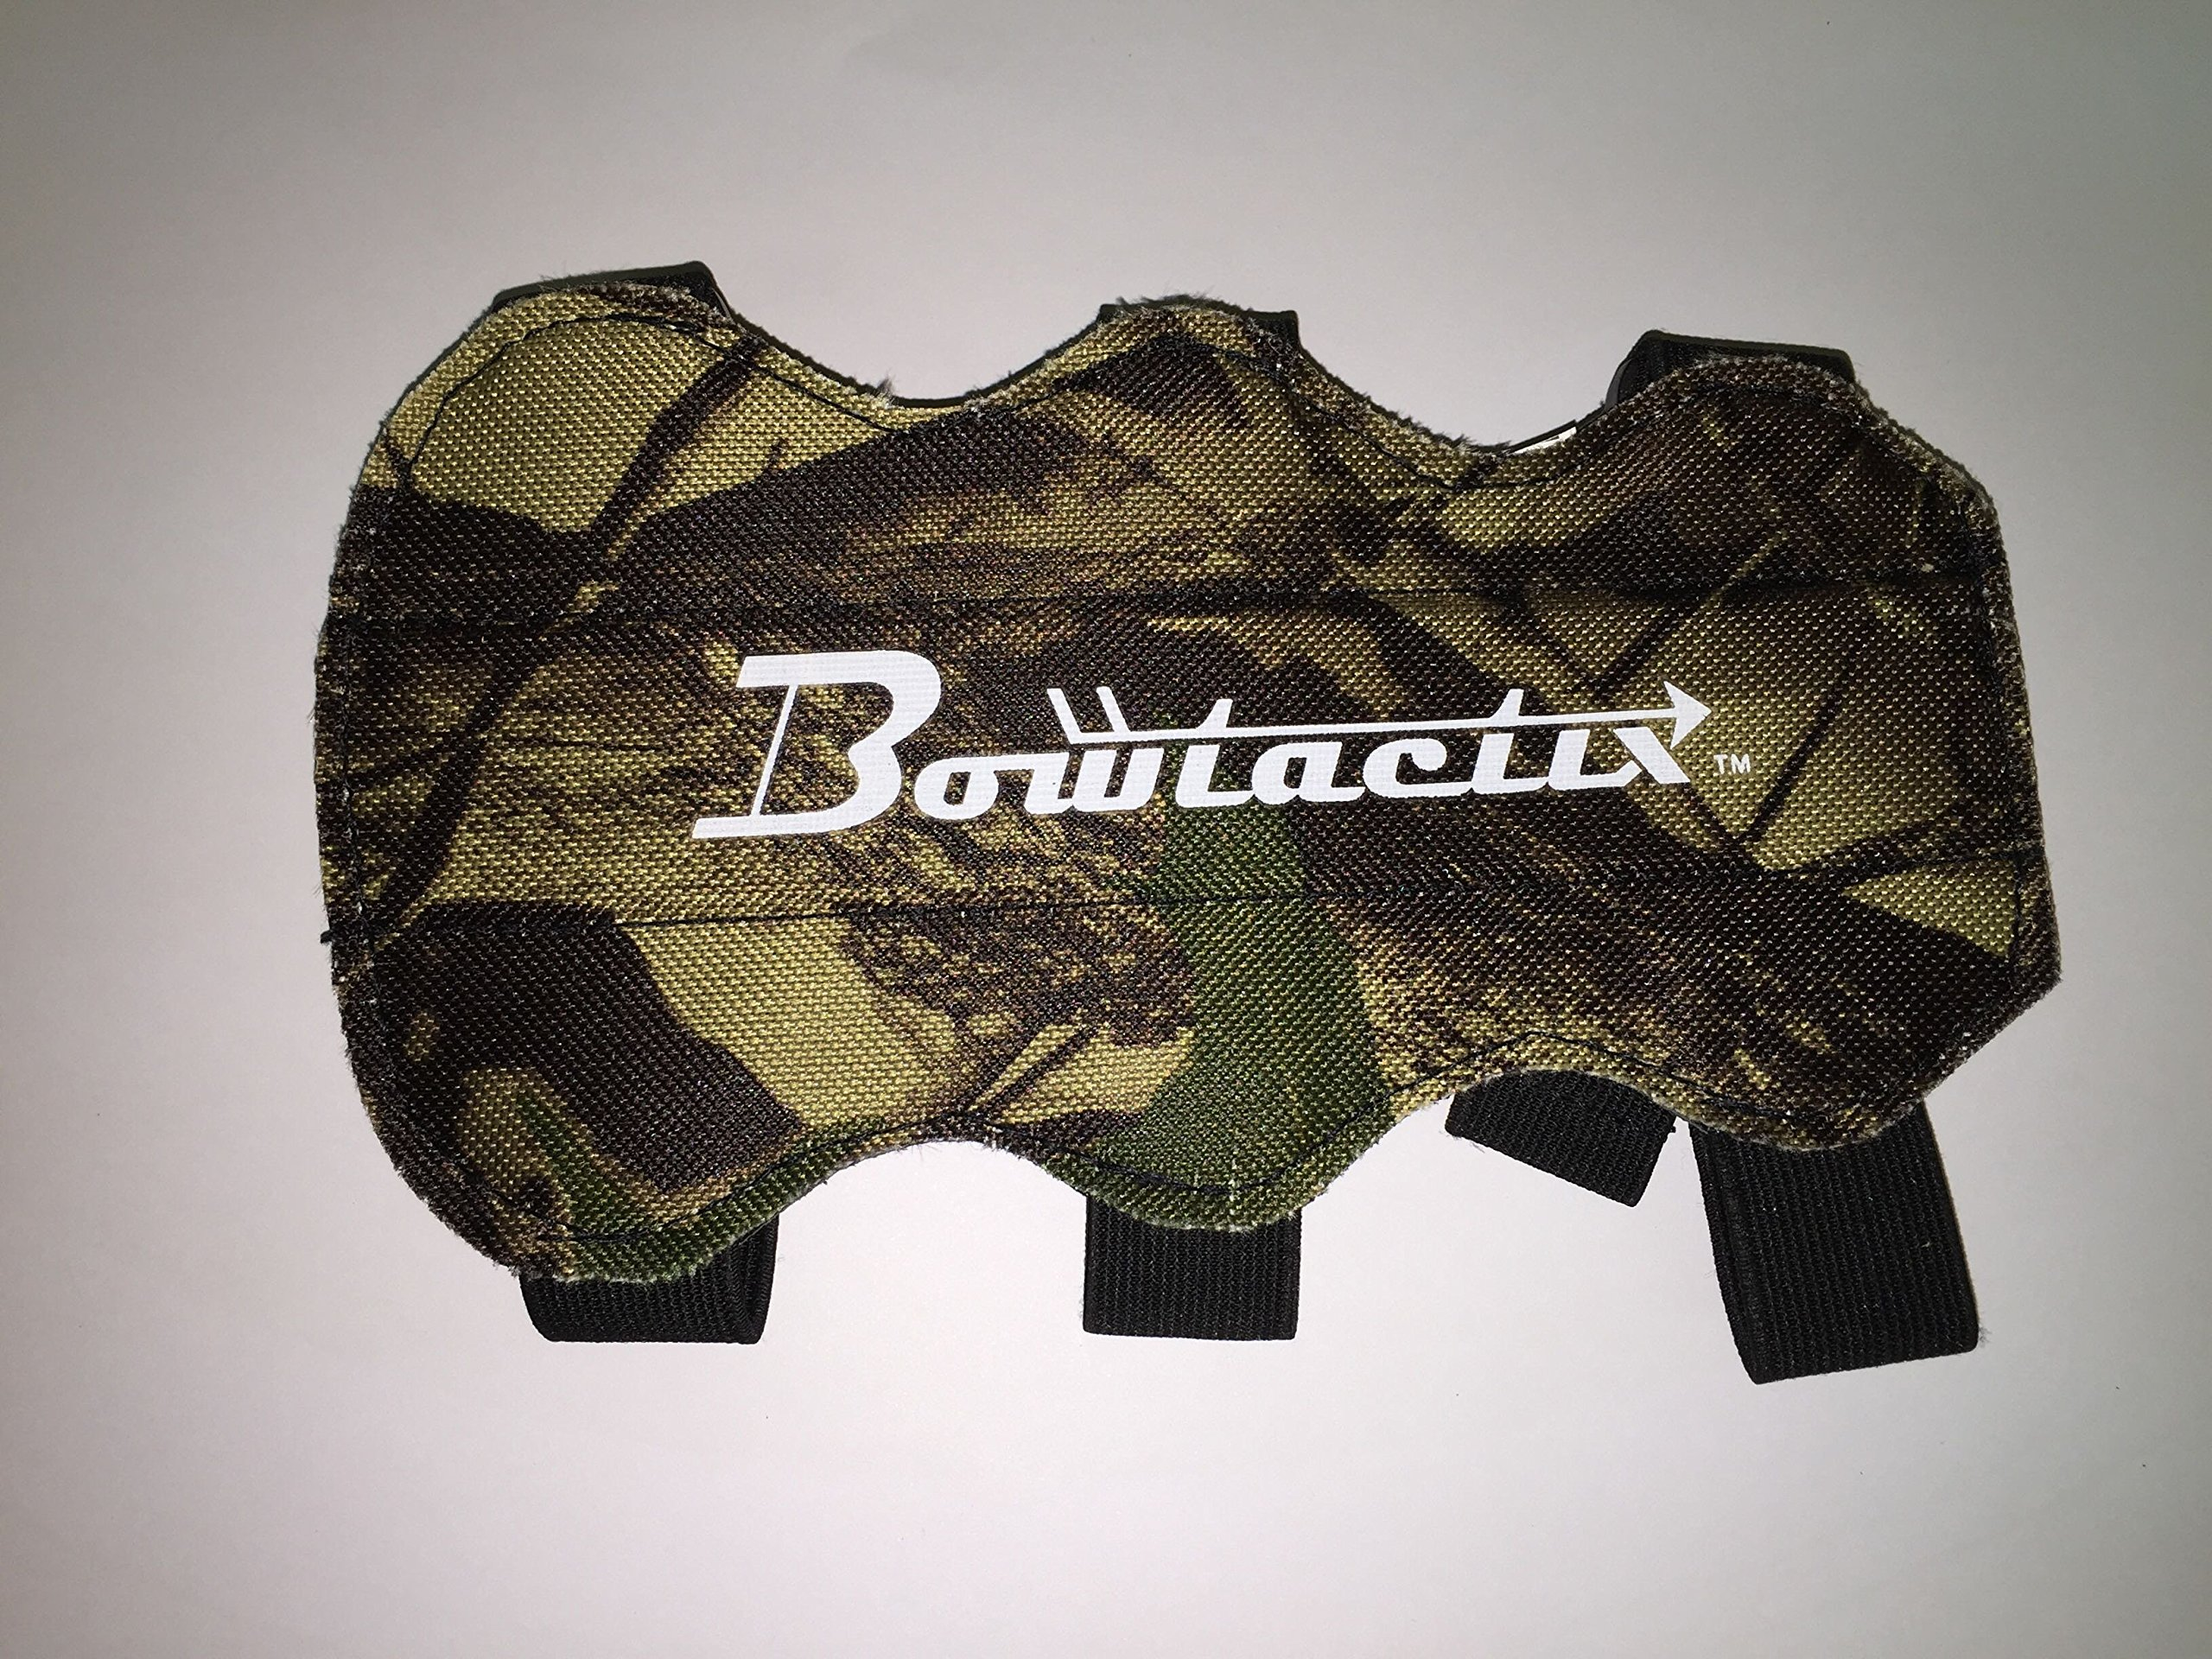 Light Weight Archery Arm Guard, Forms to the Arm for a Great Fit